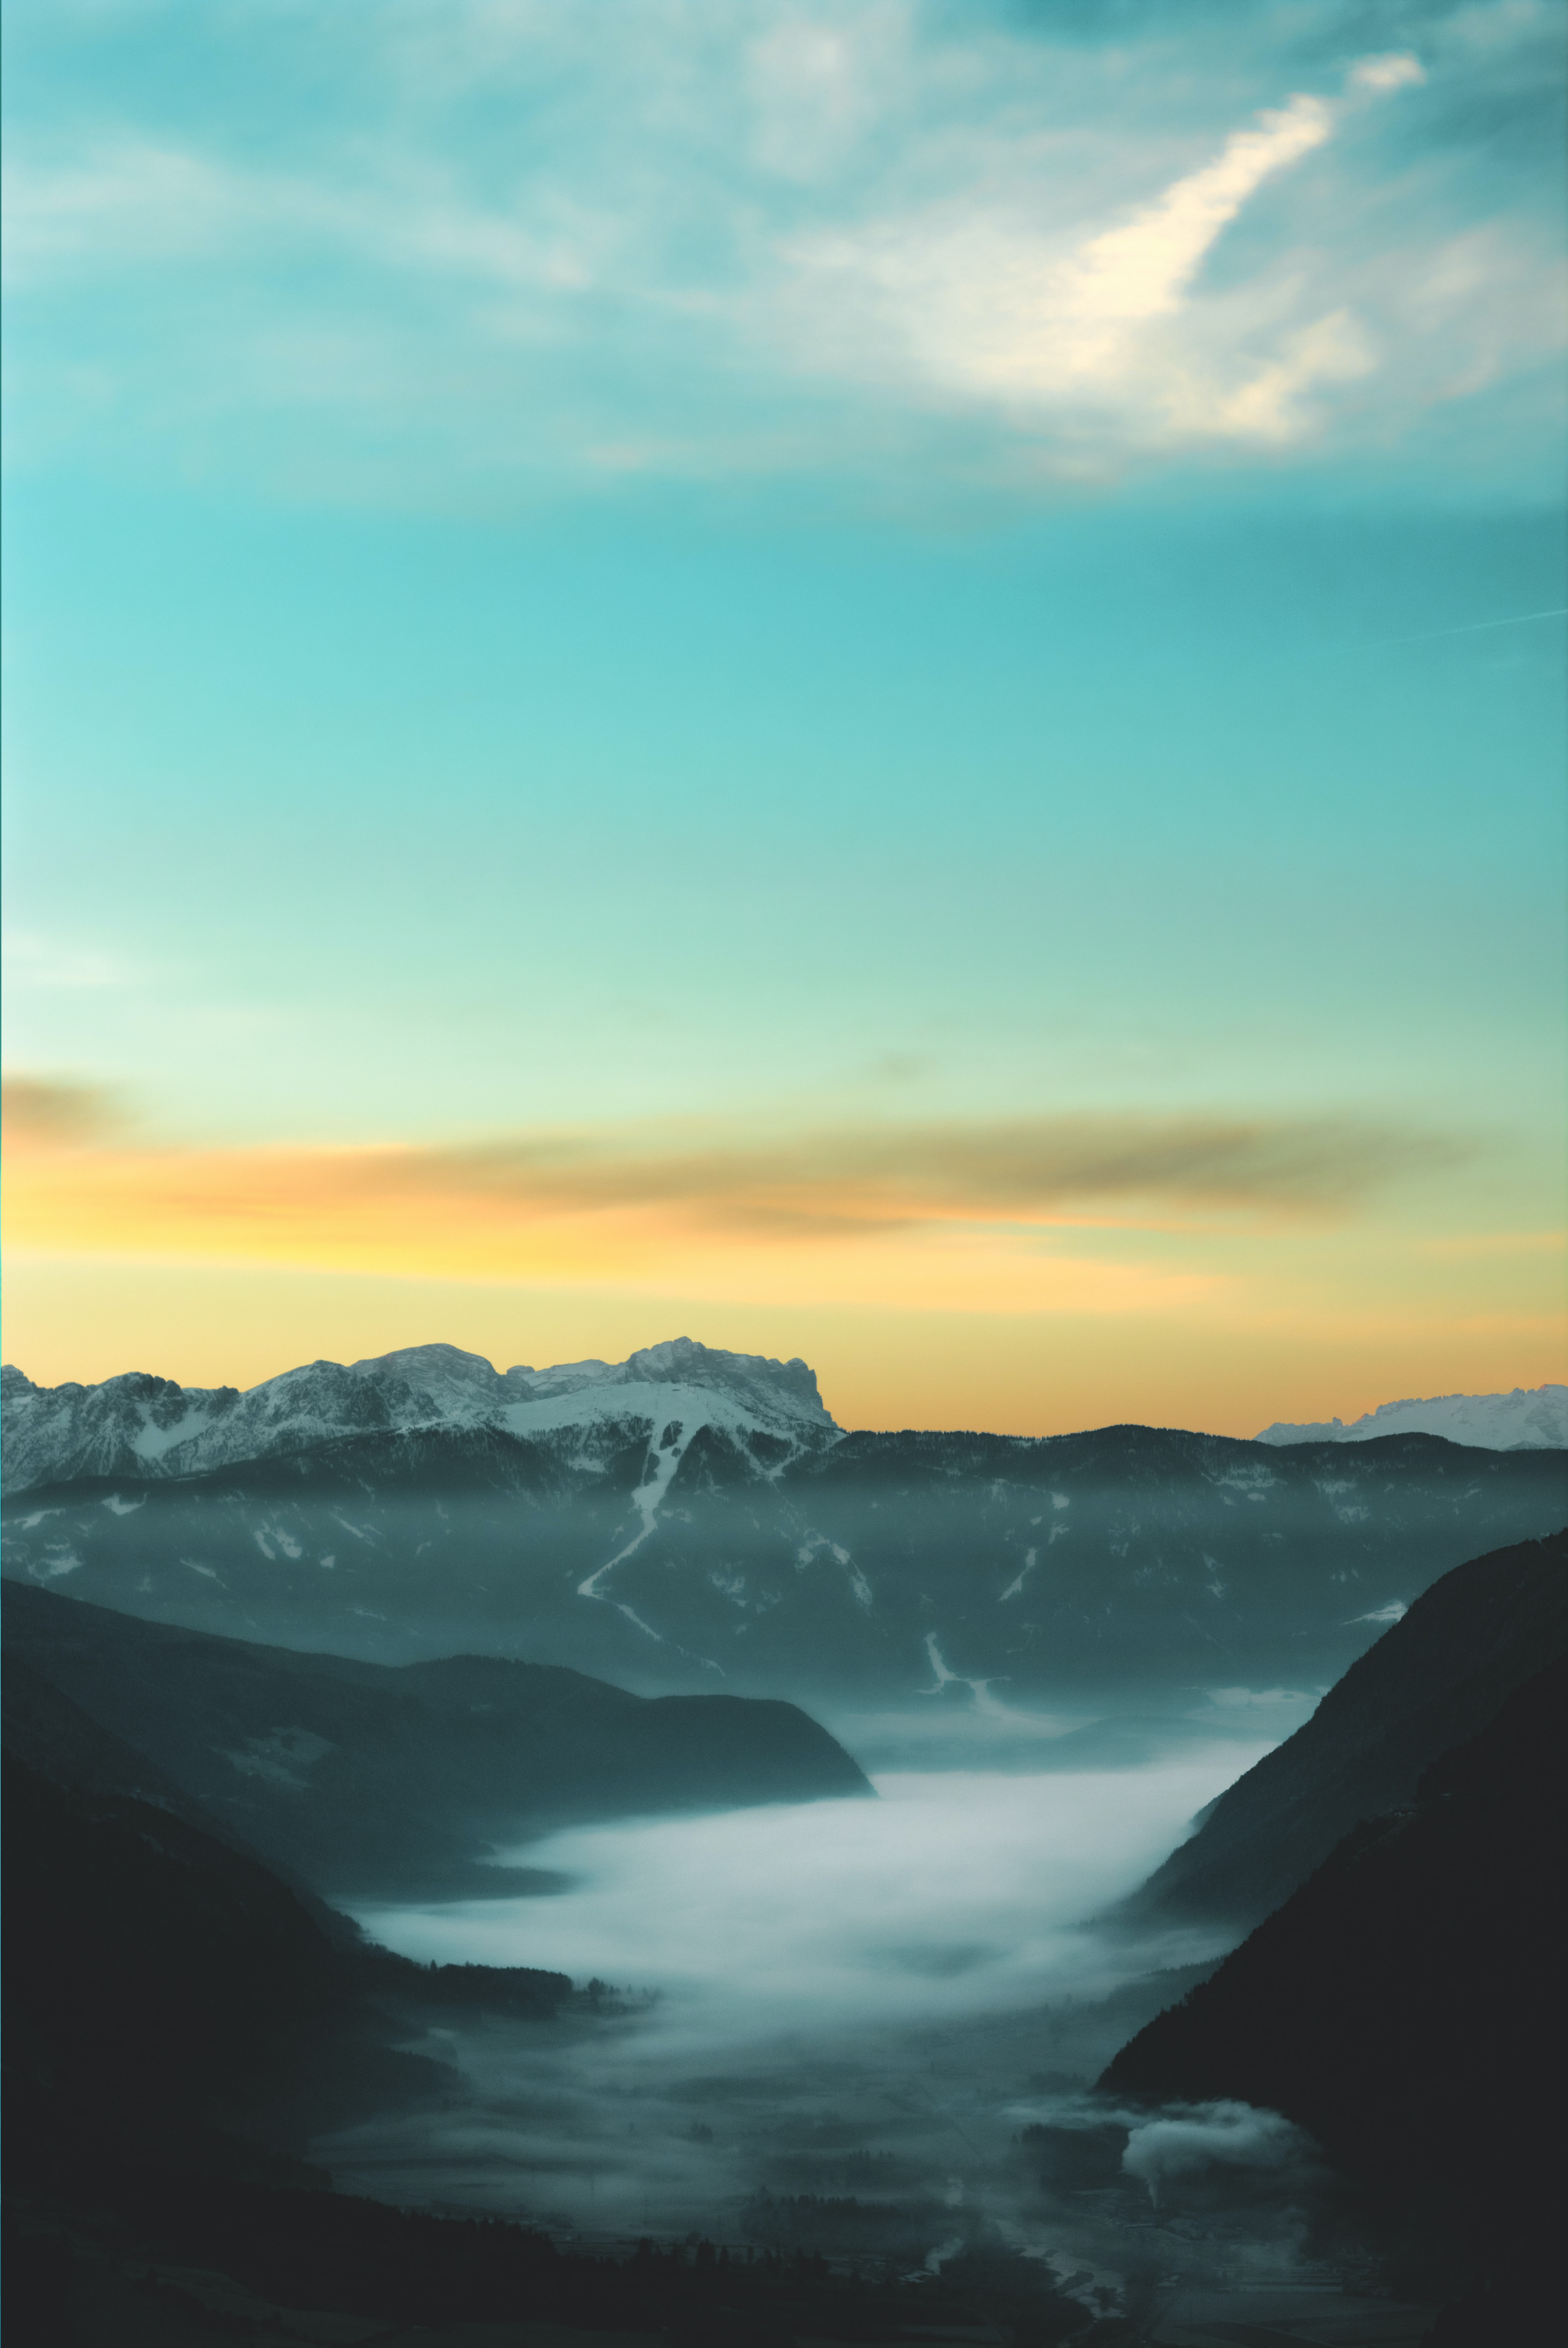 overlooking view of mountains